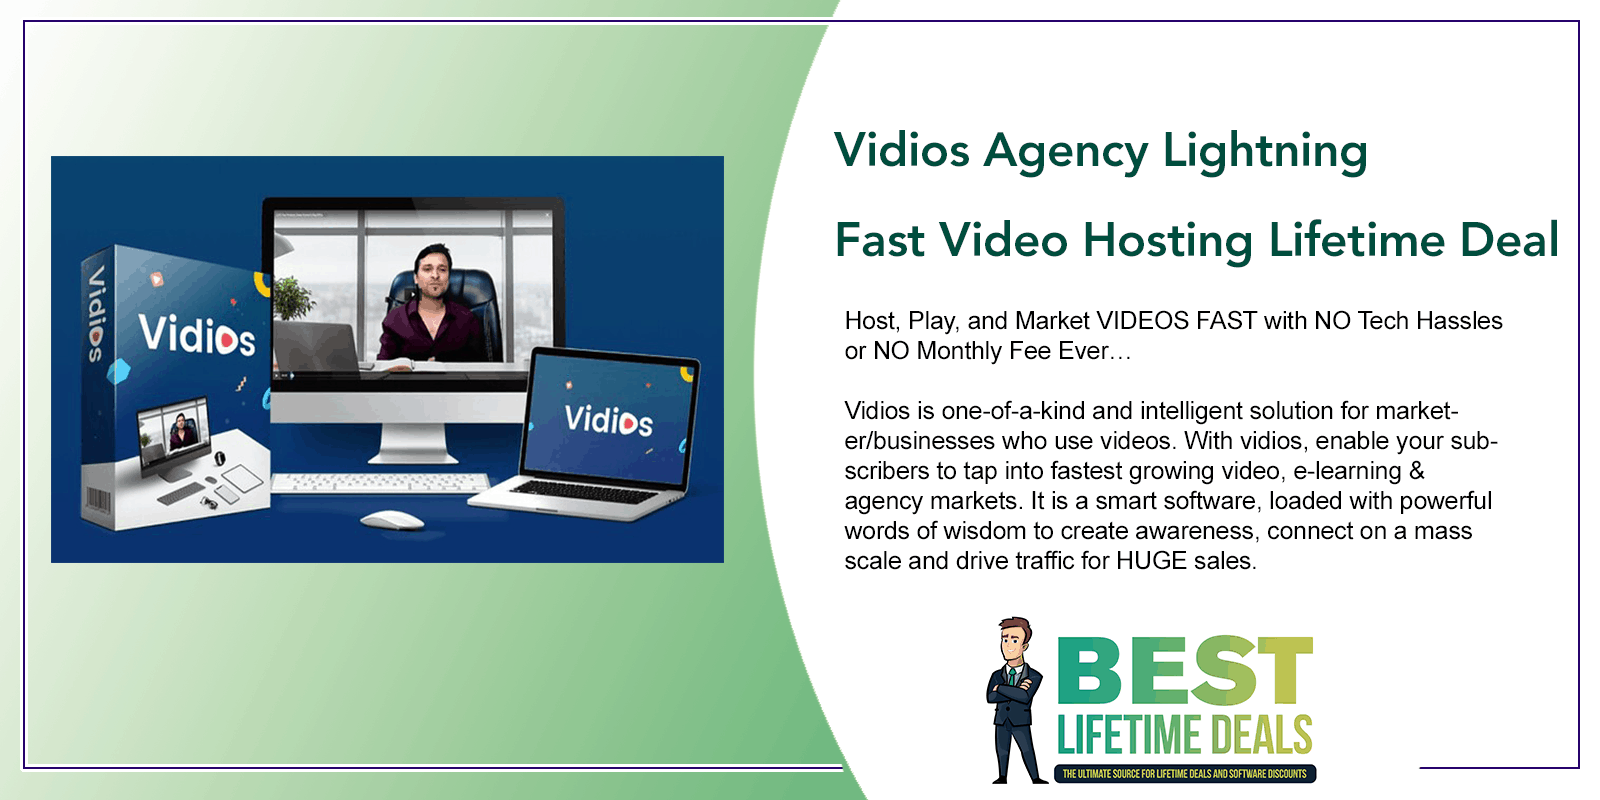 Vidios Agency Lightning Fast Video Hosting Featured Image